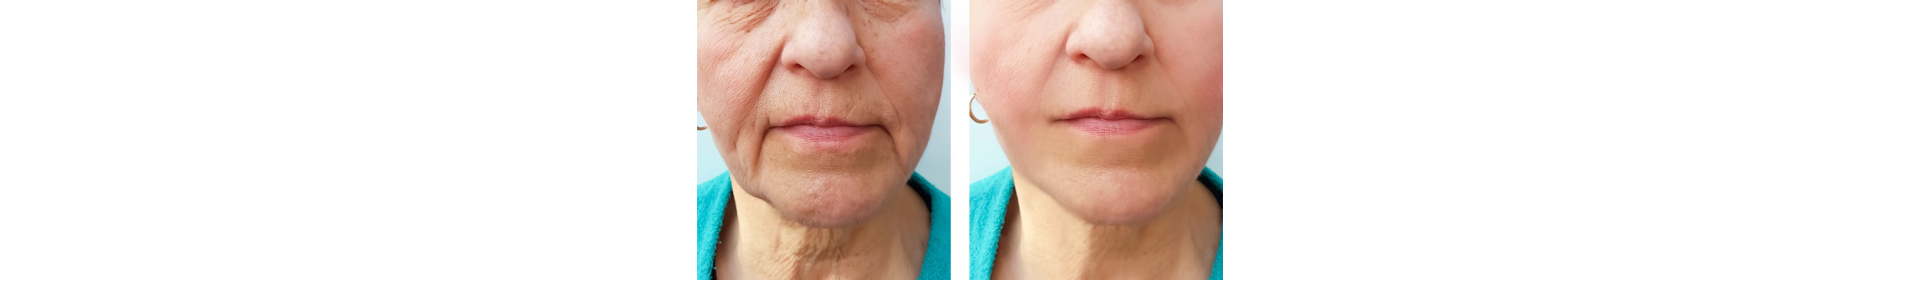 face of an elderly woman wrinkles face before and after procedures